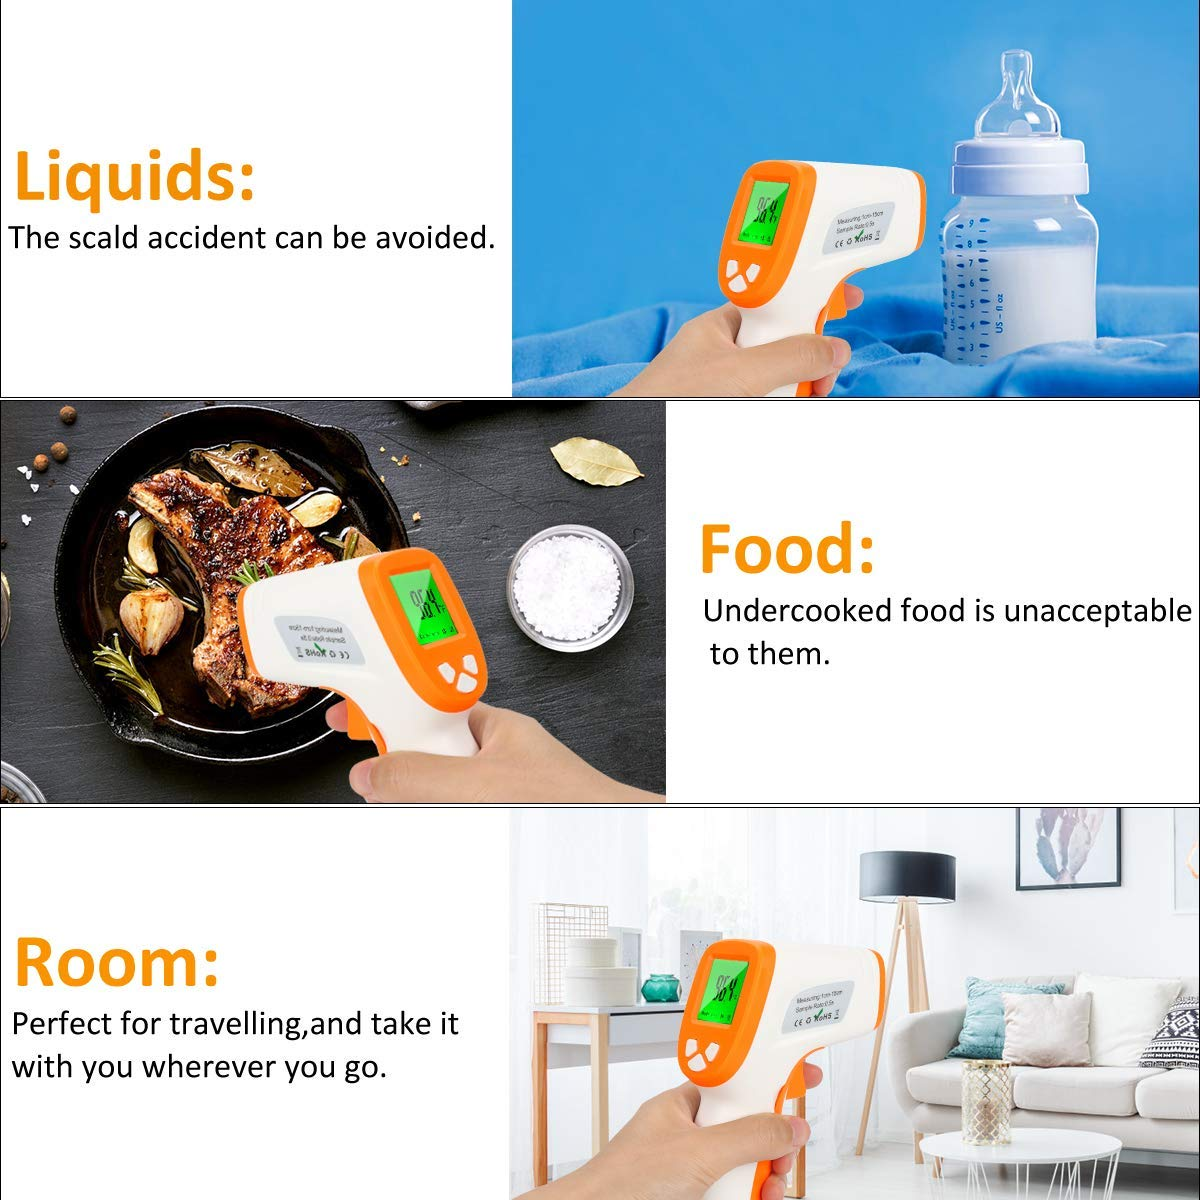 Infrared Forehead Thermometer iCode Ear and Forehead Thermometer with 3 Color Backlight Alarm,˚C 2 Pack ˚F Switch with Instant Reading Fever Warning